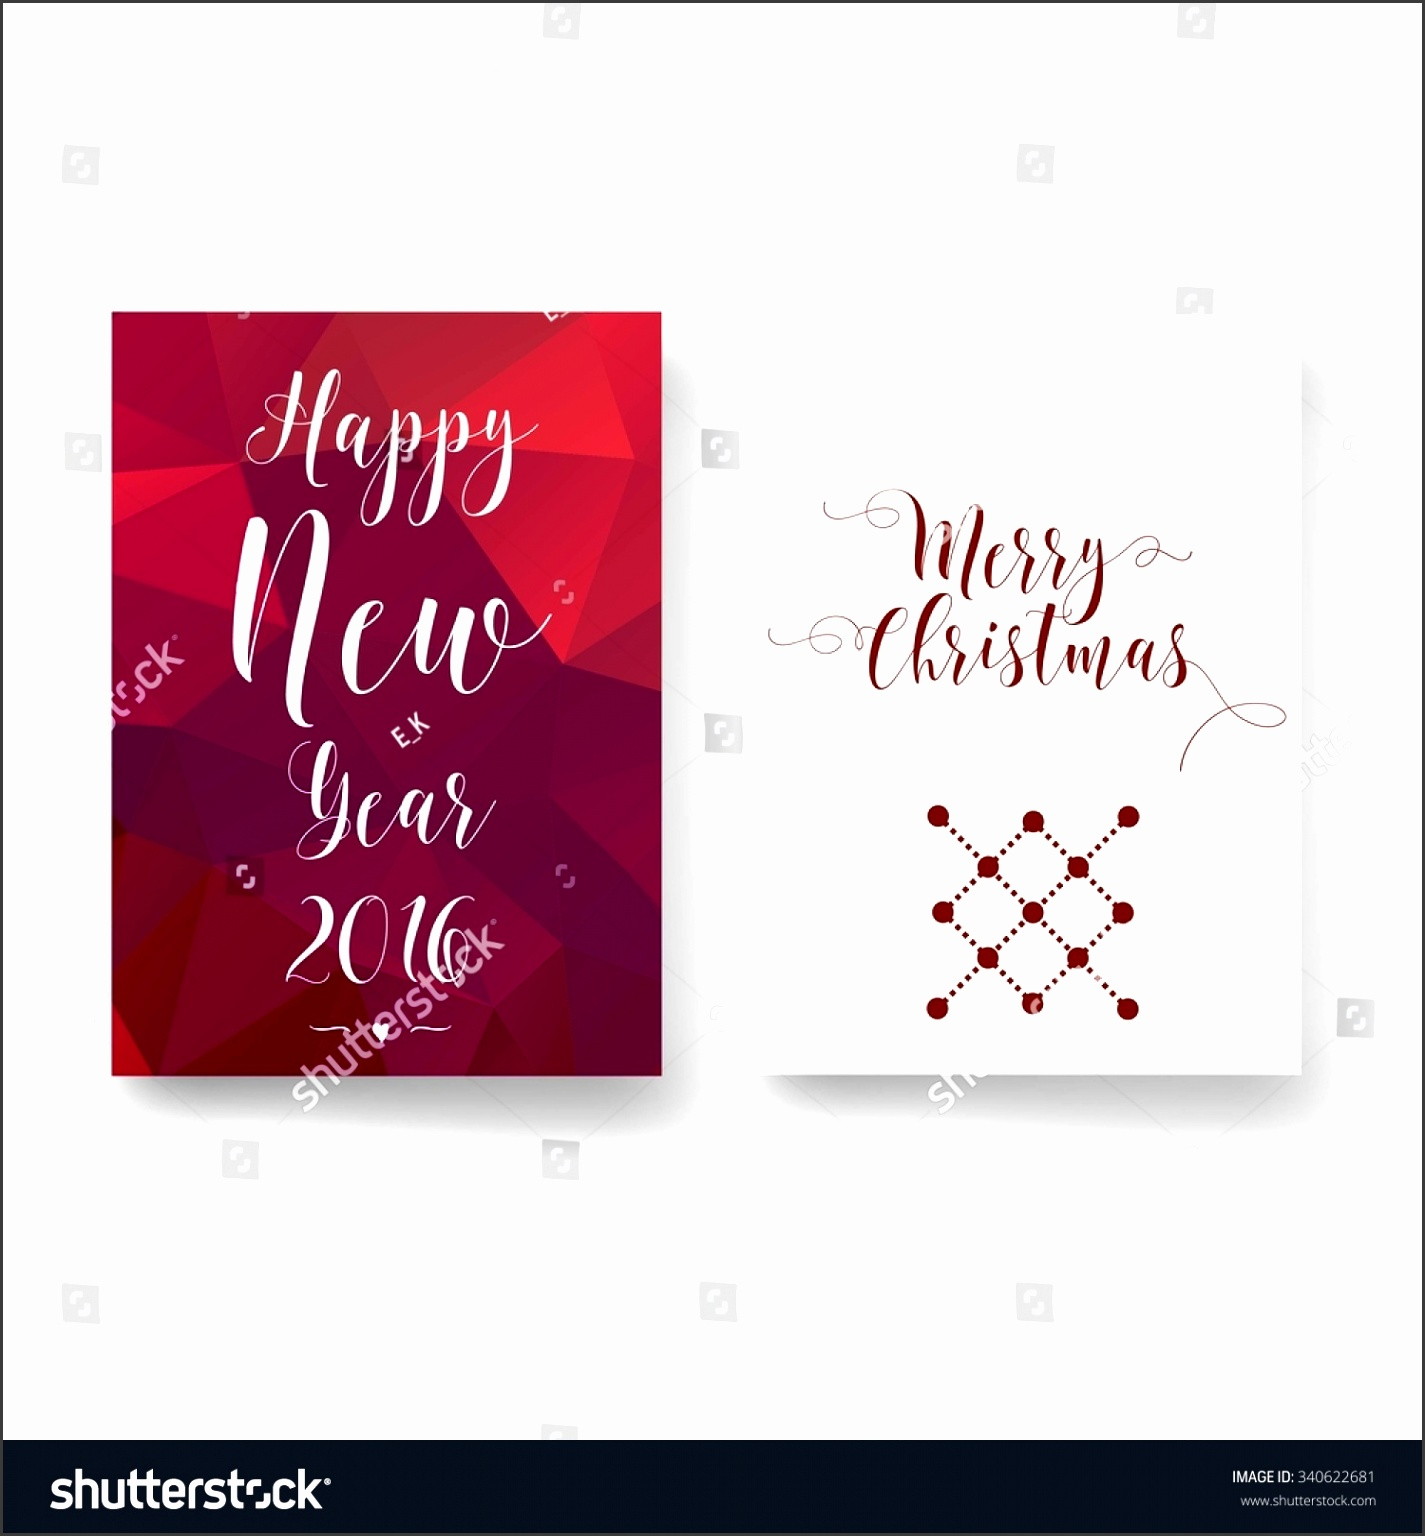 Colorful Merry Christmas flyer Christmas card templates Christmas Posters set Vector illustration